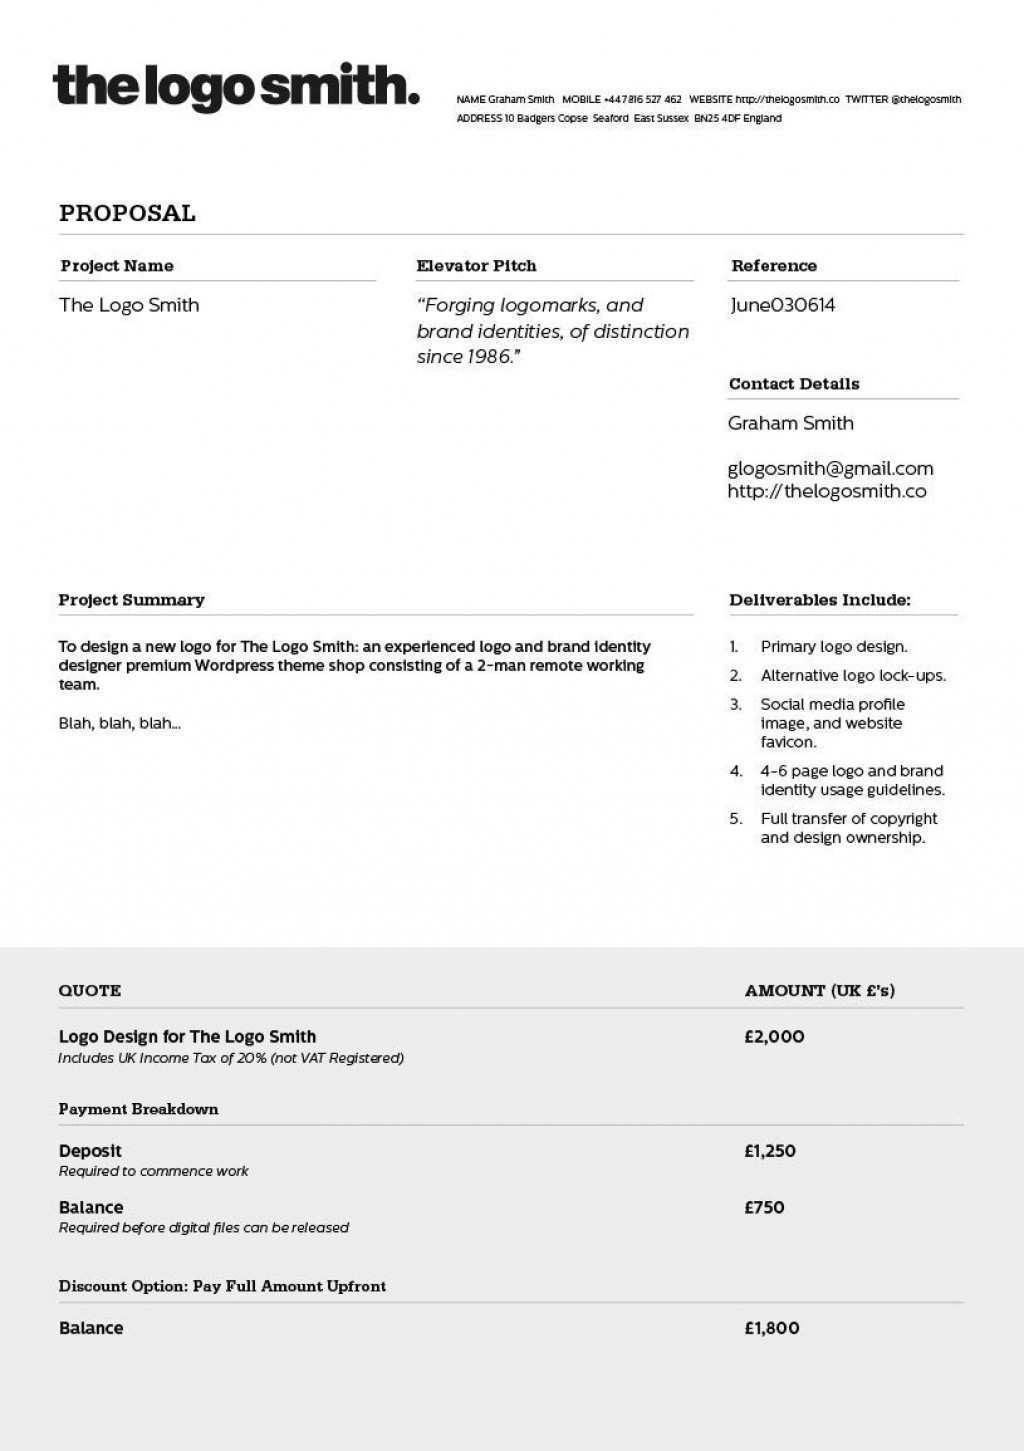 28 Customize Our Free Artist Invoice Template Uk Templates for Artist Invoice Template Uk